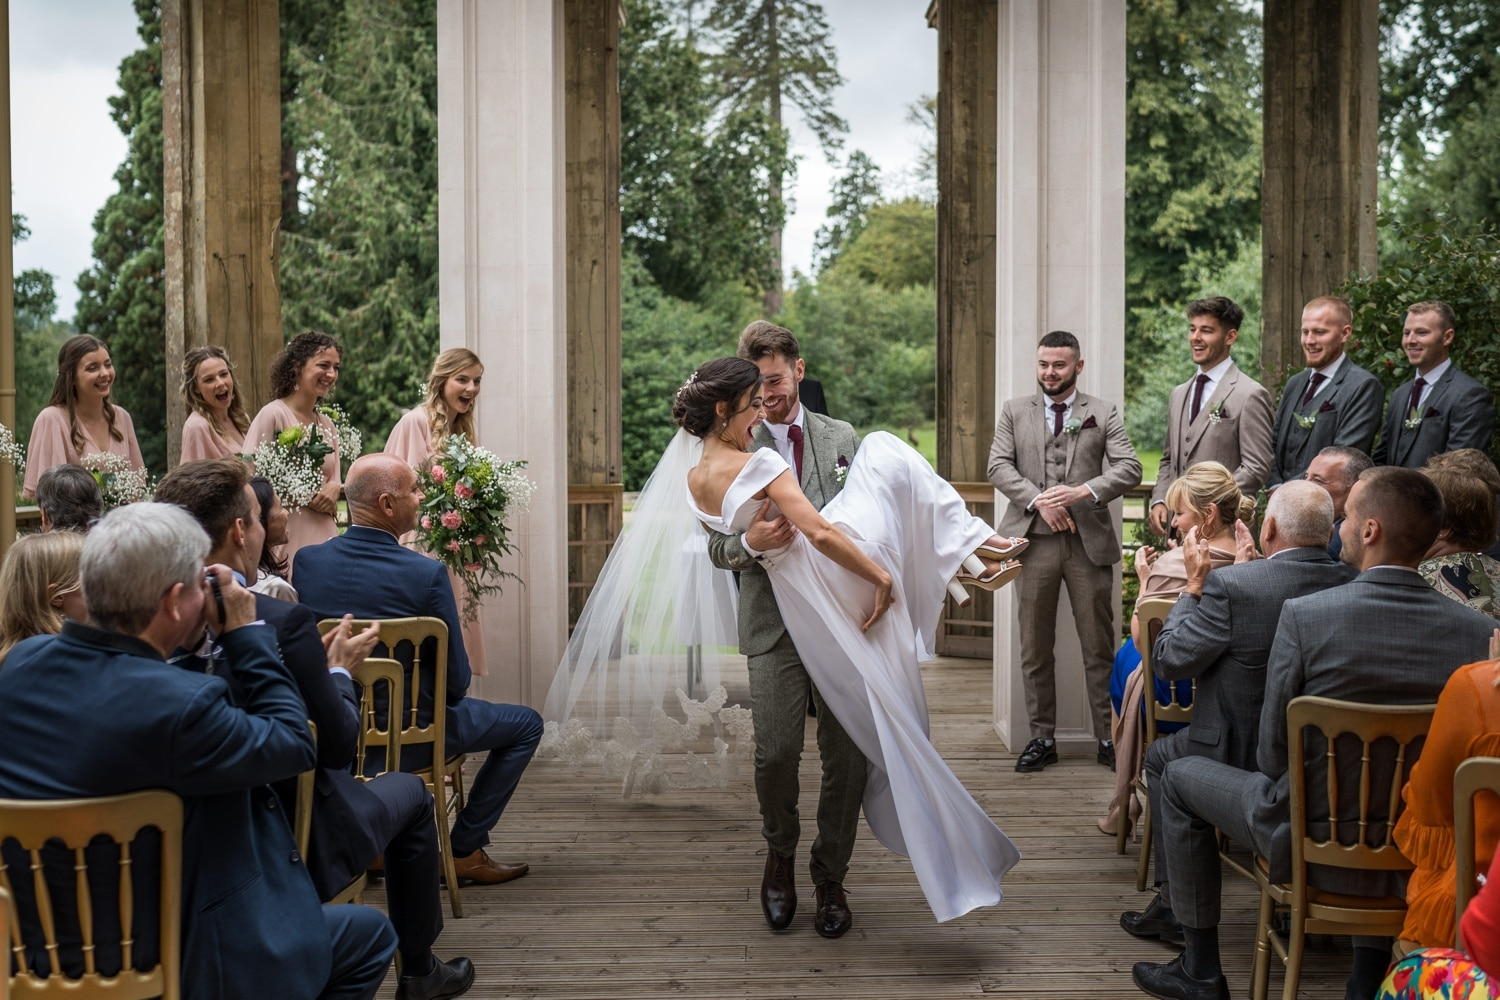 Outside wedding ceremony at Orchardleigh House, Somerset